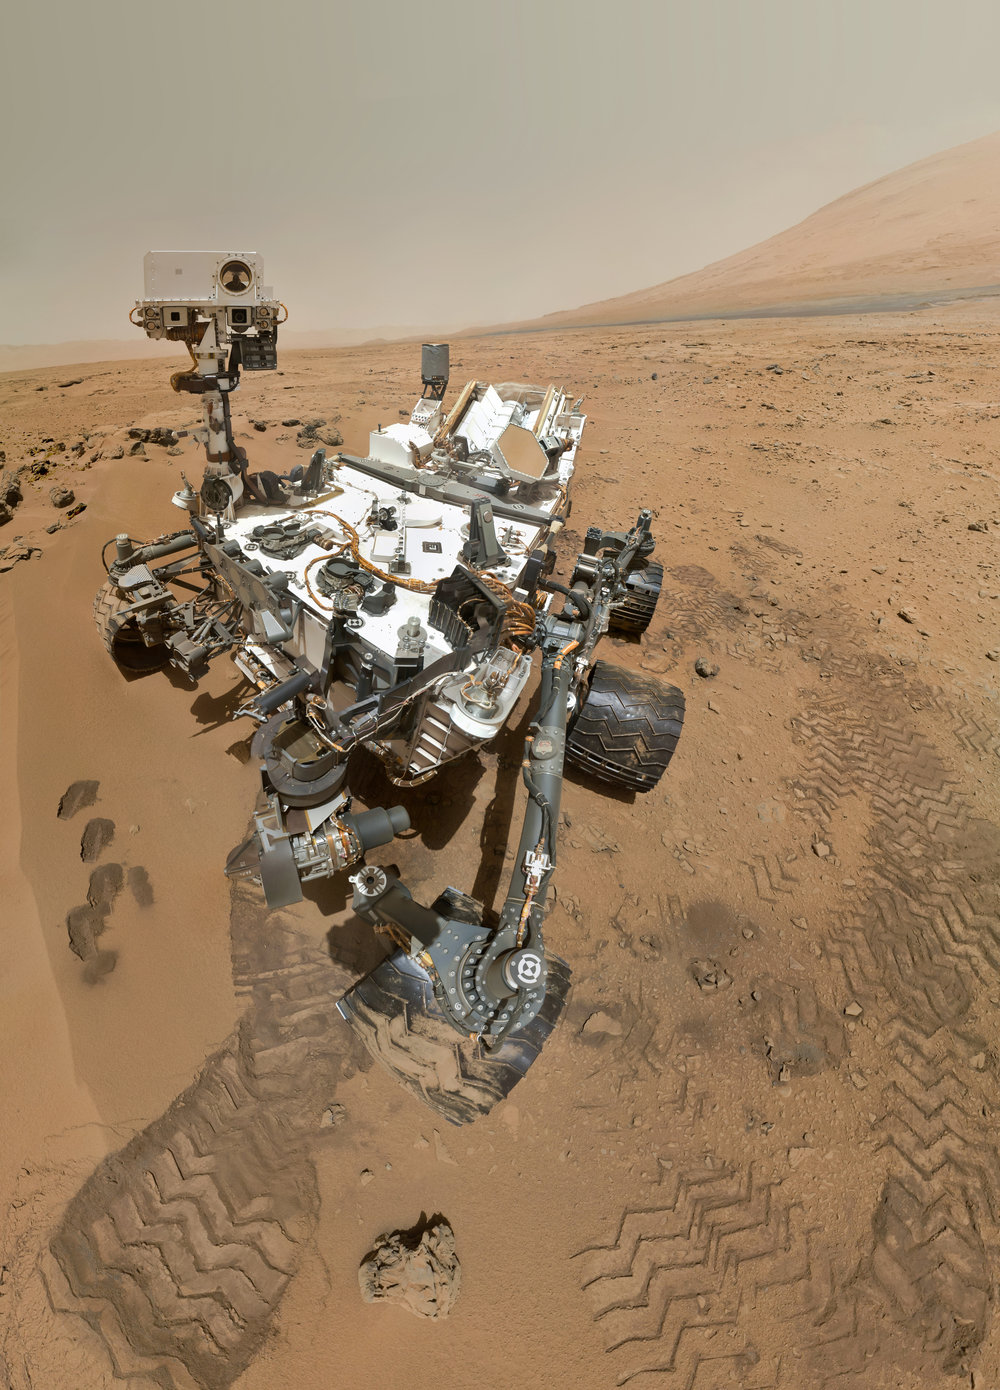 Curiosity Rover - Mars Science Laboratory Curiosity Rover is equipped with an autonomous navigation software innovations that enable rovers to drive without human intervention to a desired location.